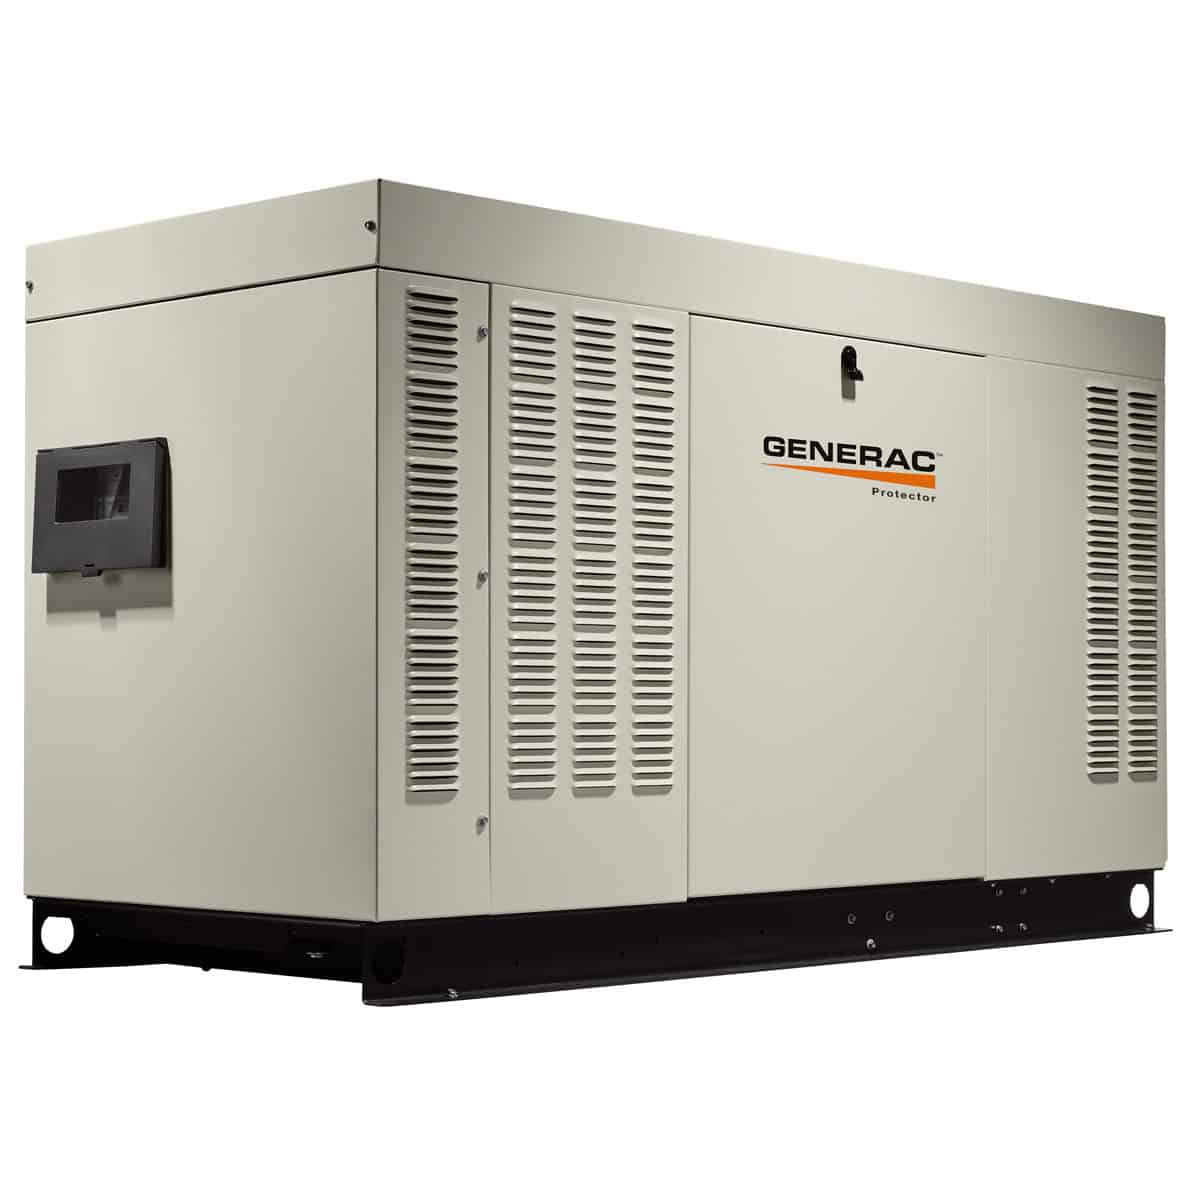 3 Phase 22kw Generator Schematics Trusted Wiring Diagrams Generac Diagram 208v Ng Lp Norwall Powersystems Internal